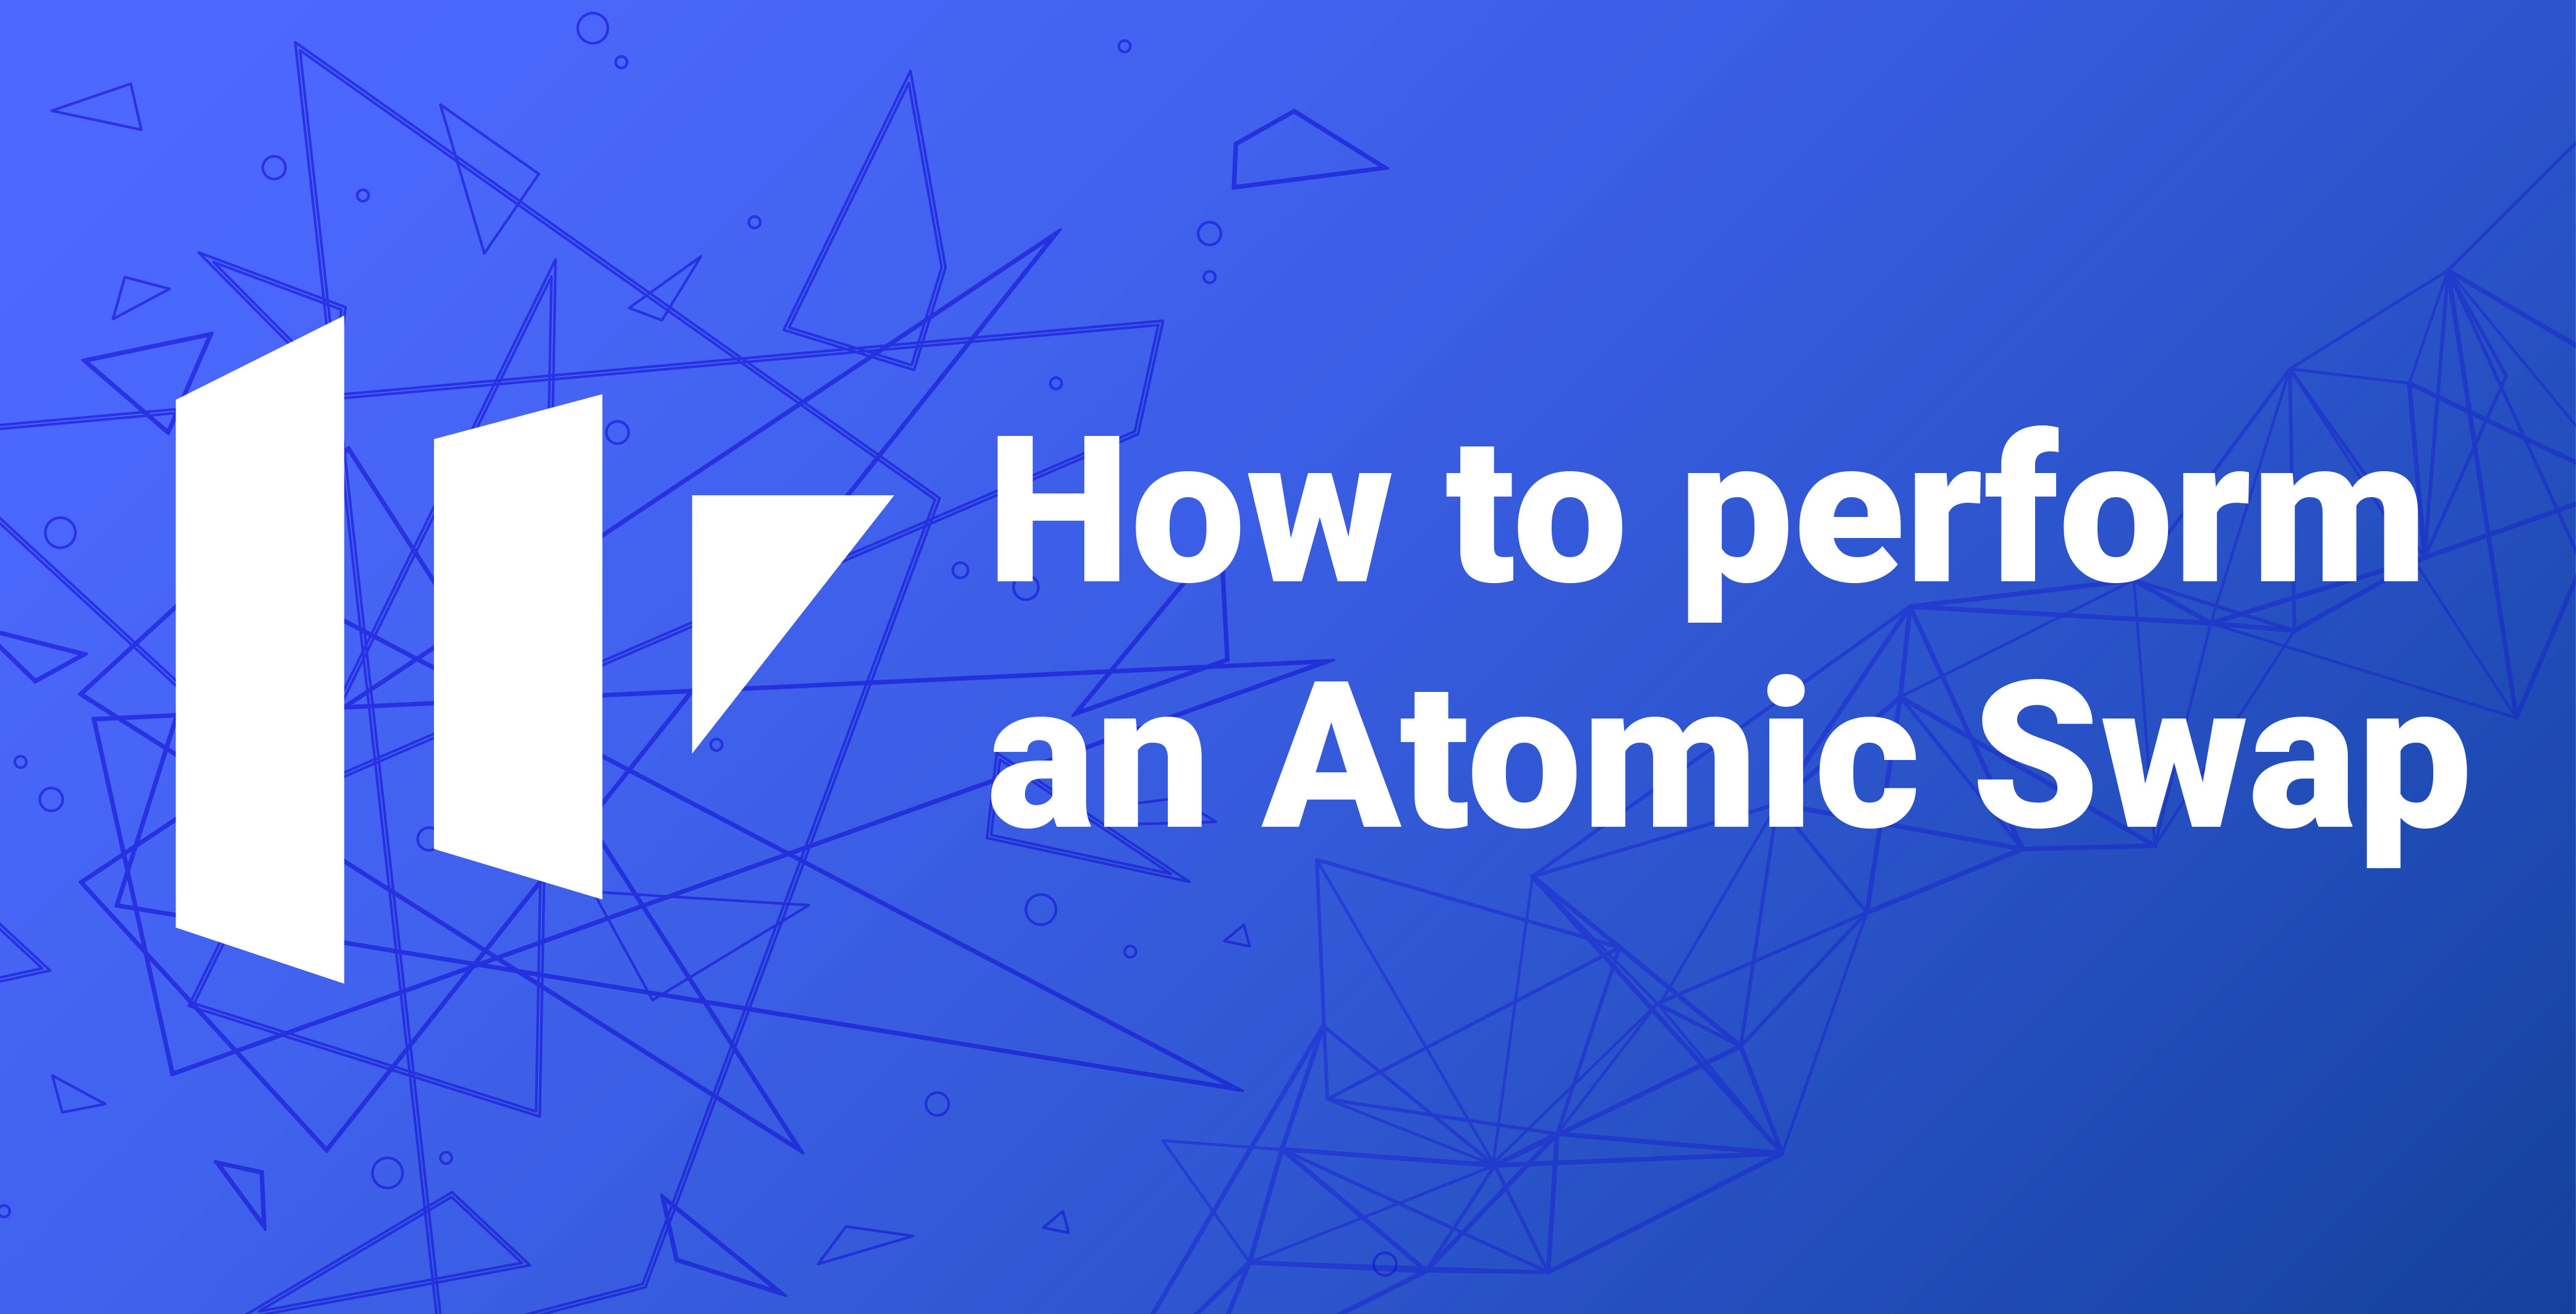 How to perform an Atomic Swap